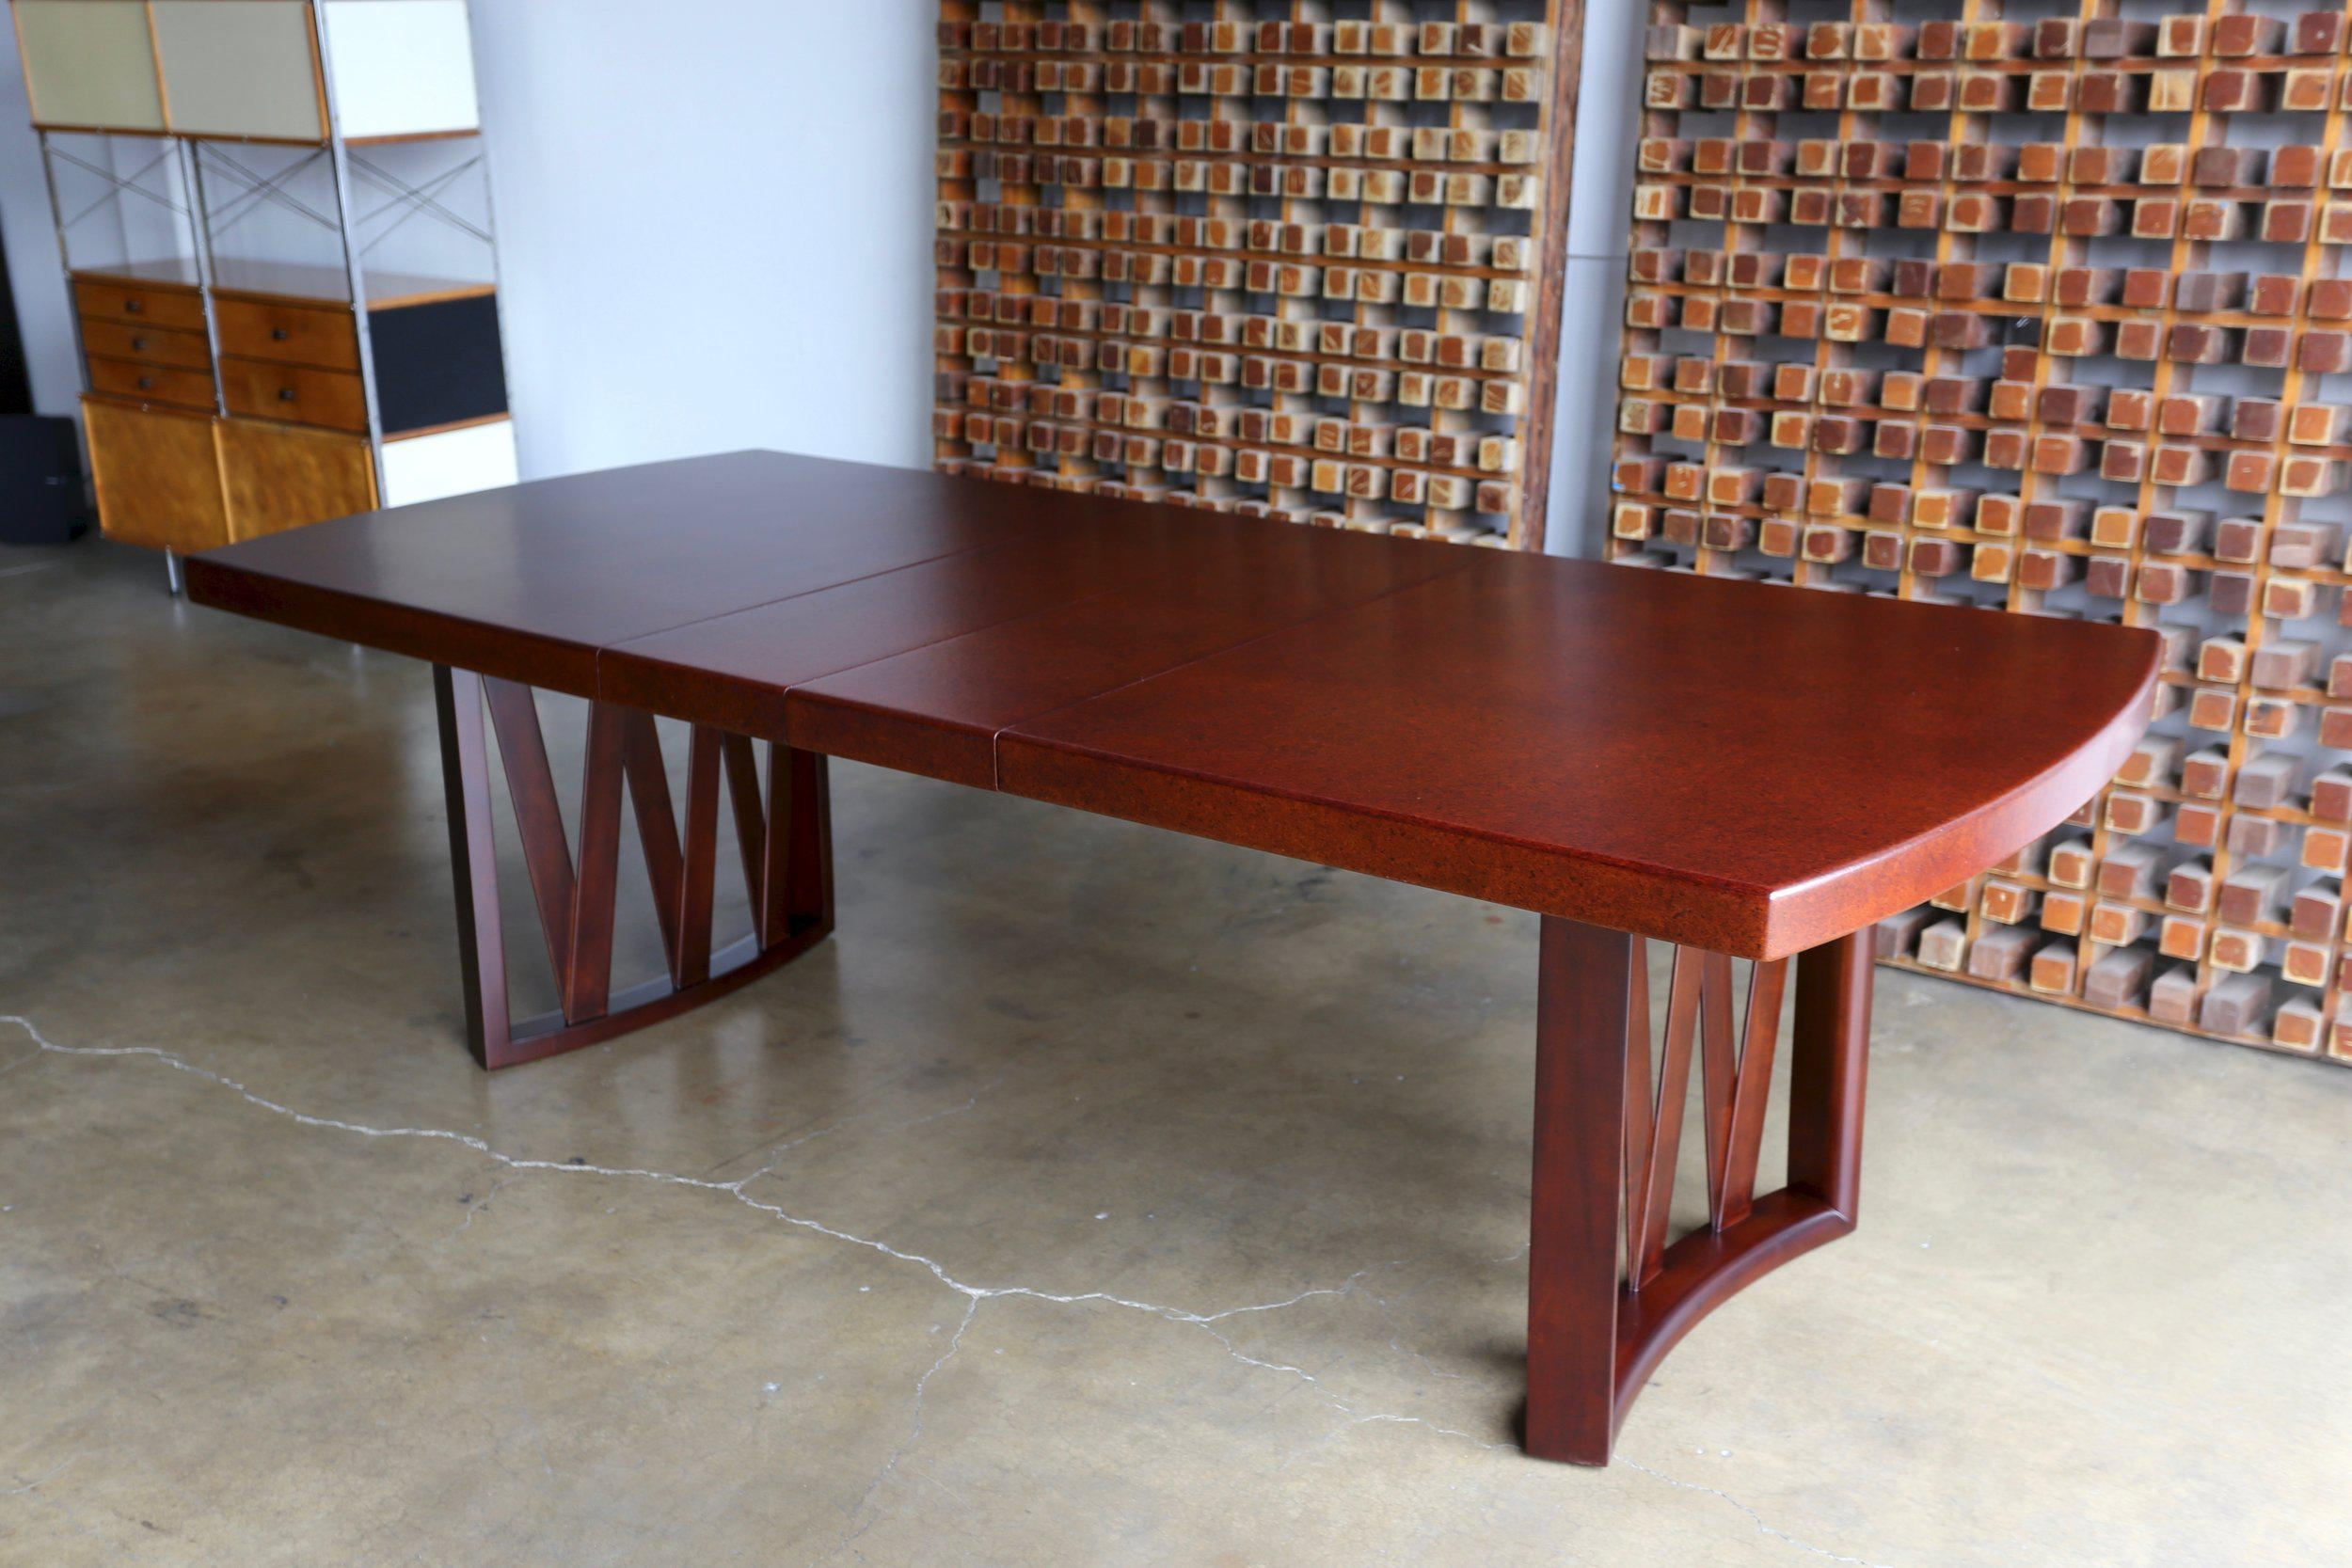 Paul Frankl Cork And Mahogany Dining Table For Johnson Furniture Company.  This Piece Has Been